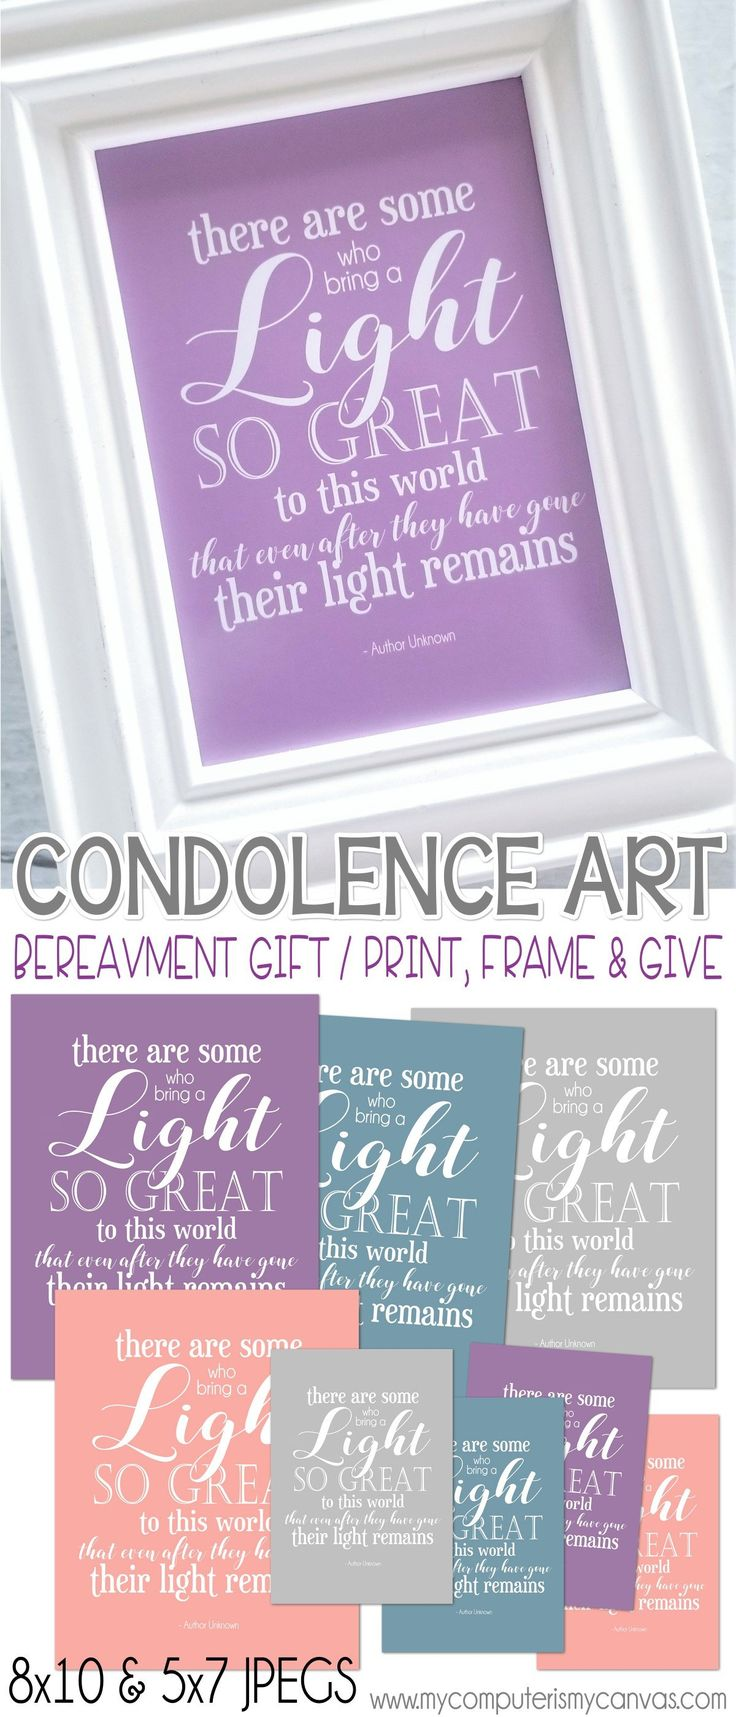 Condolence Art, Bereavement Gift - print, frame, give. There are some who bring a light so great... funeral display, funeral quote #mycomputerismycanvas